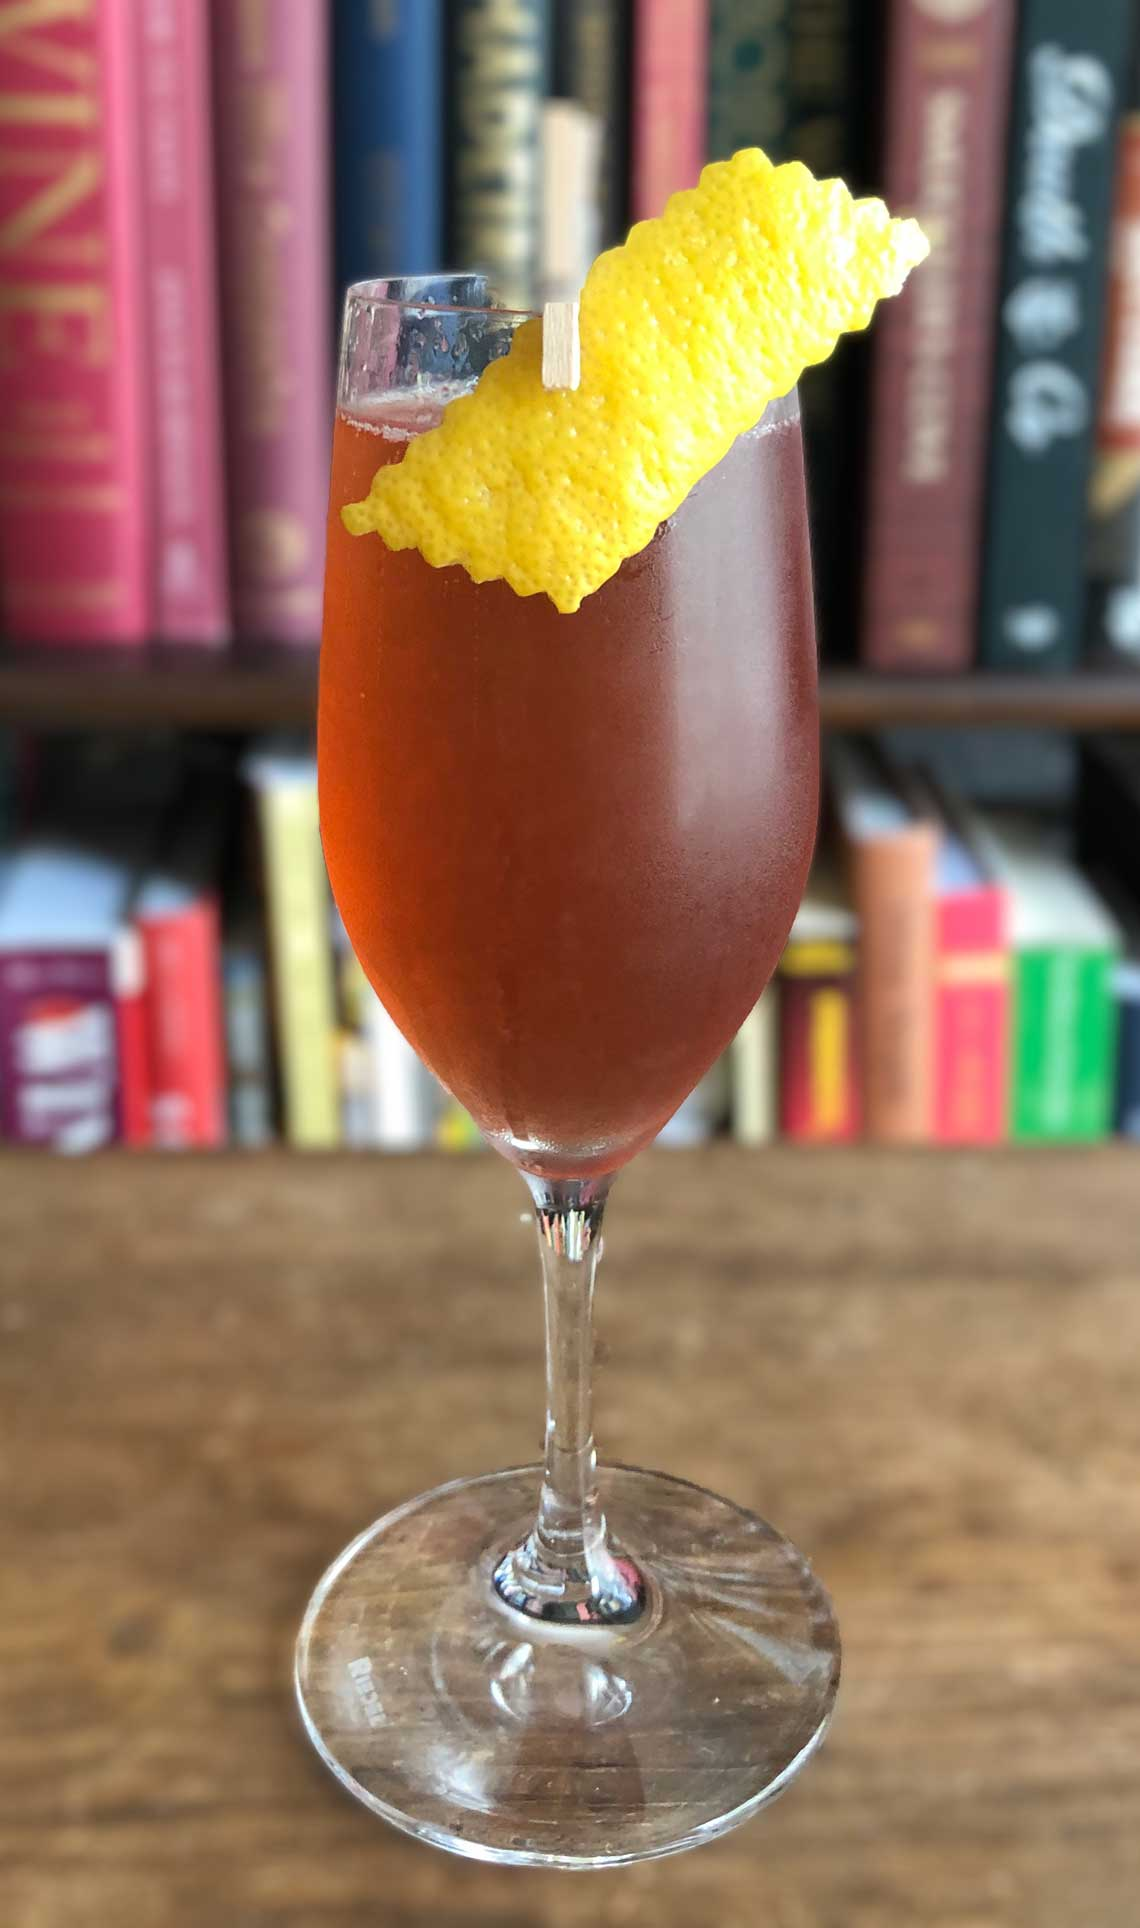 An example of the Damson Royale, the mixed drink (cocktail) featuring sparkling wine, Averell Damson Plum Gin Liqueur, and lemon juice; photo by Lee Edwards